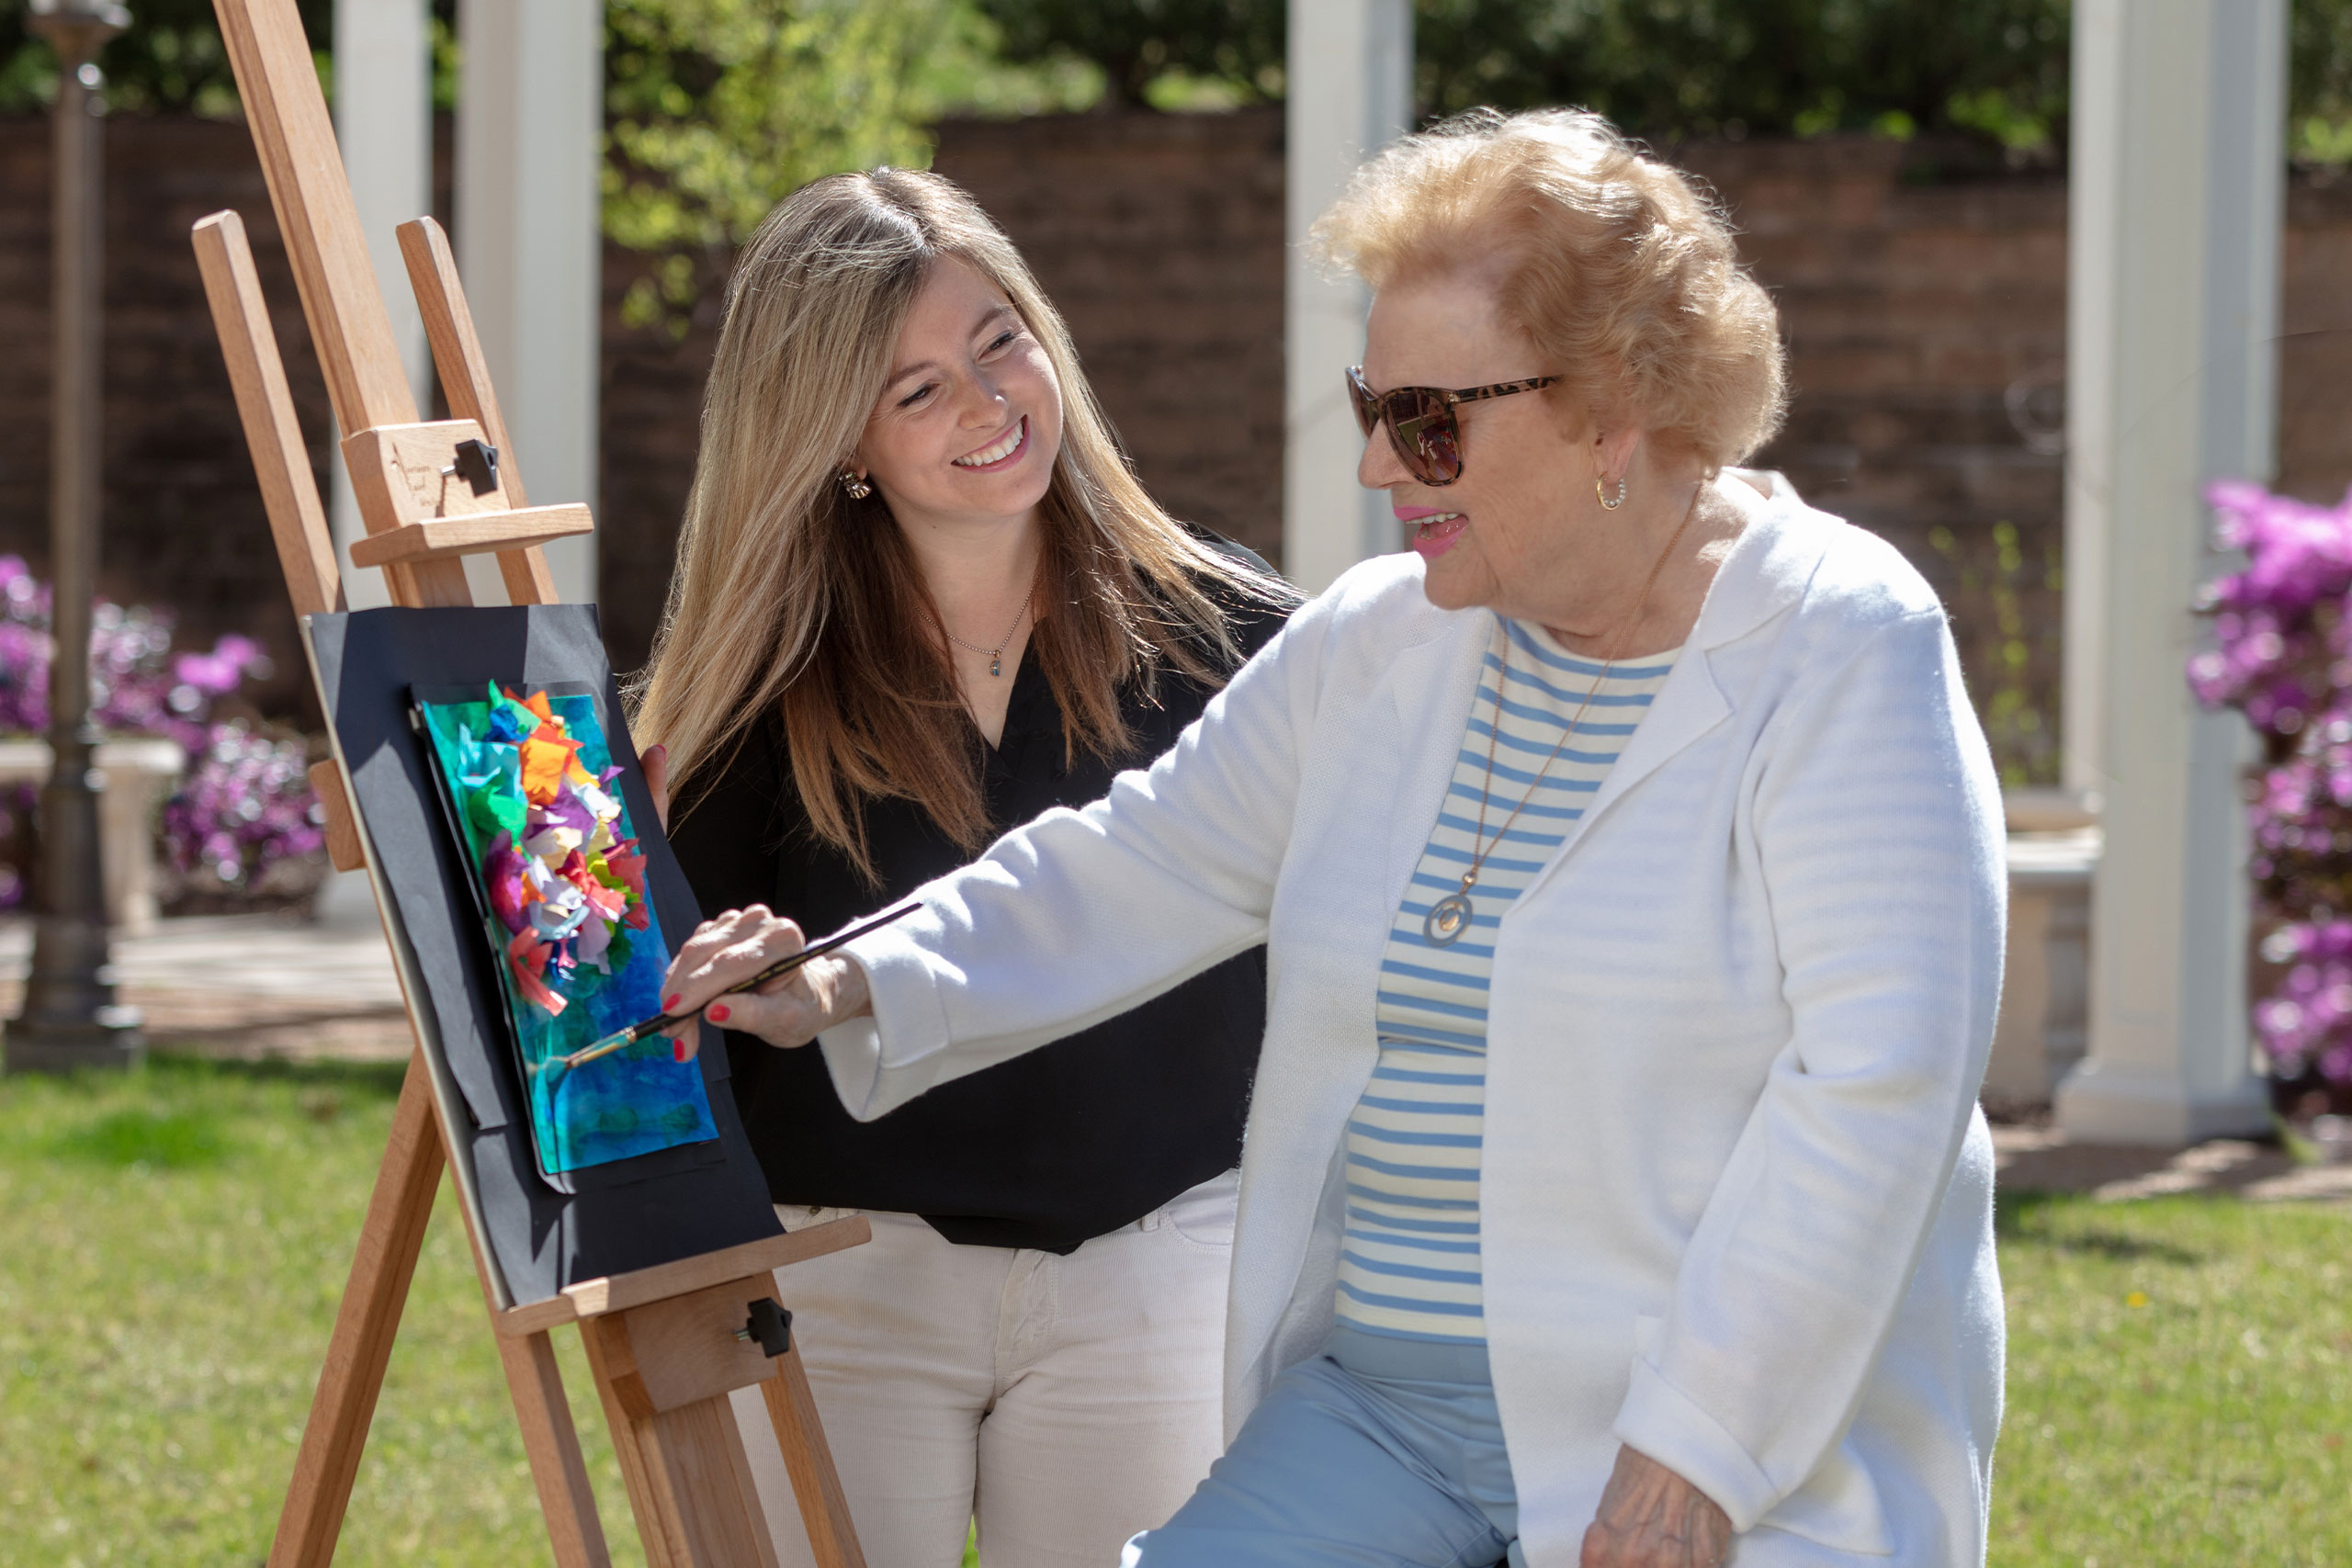 Art Therapist and resident painting on easel in outdoor courtyard.